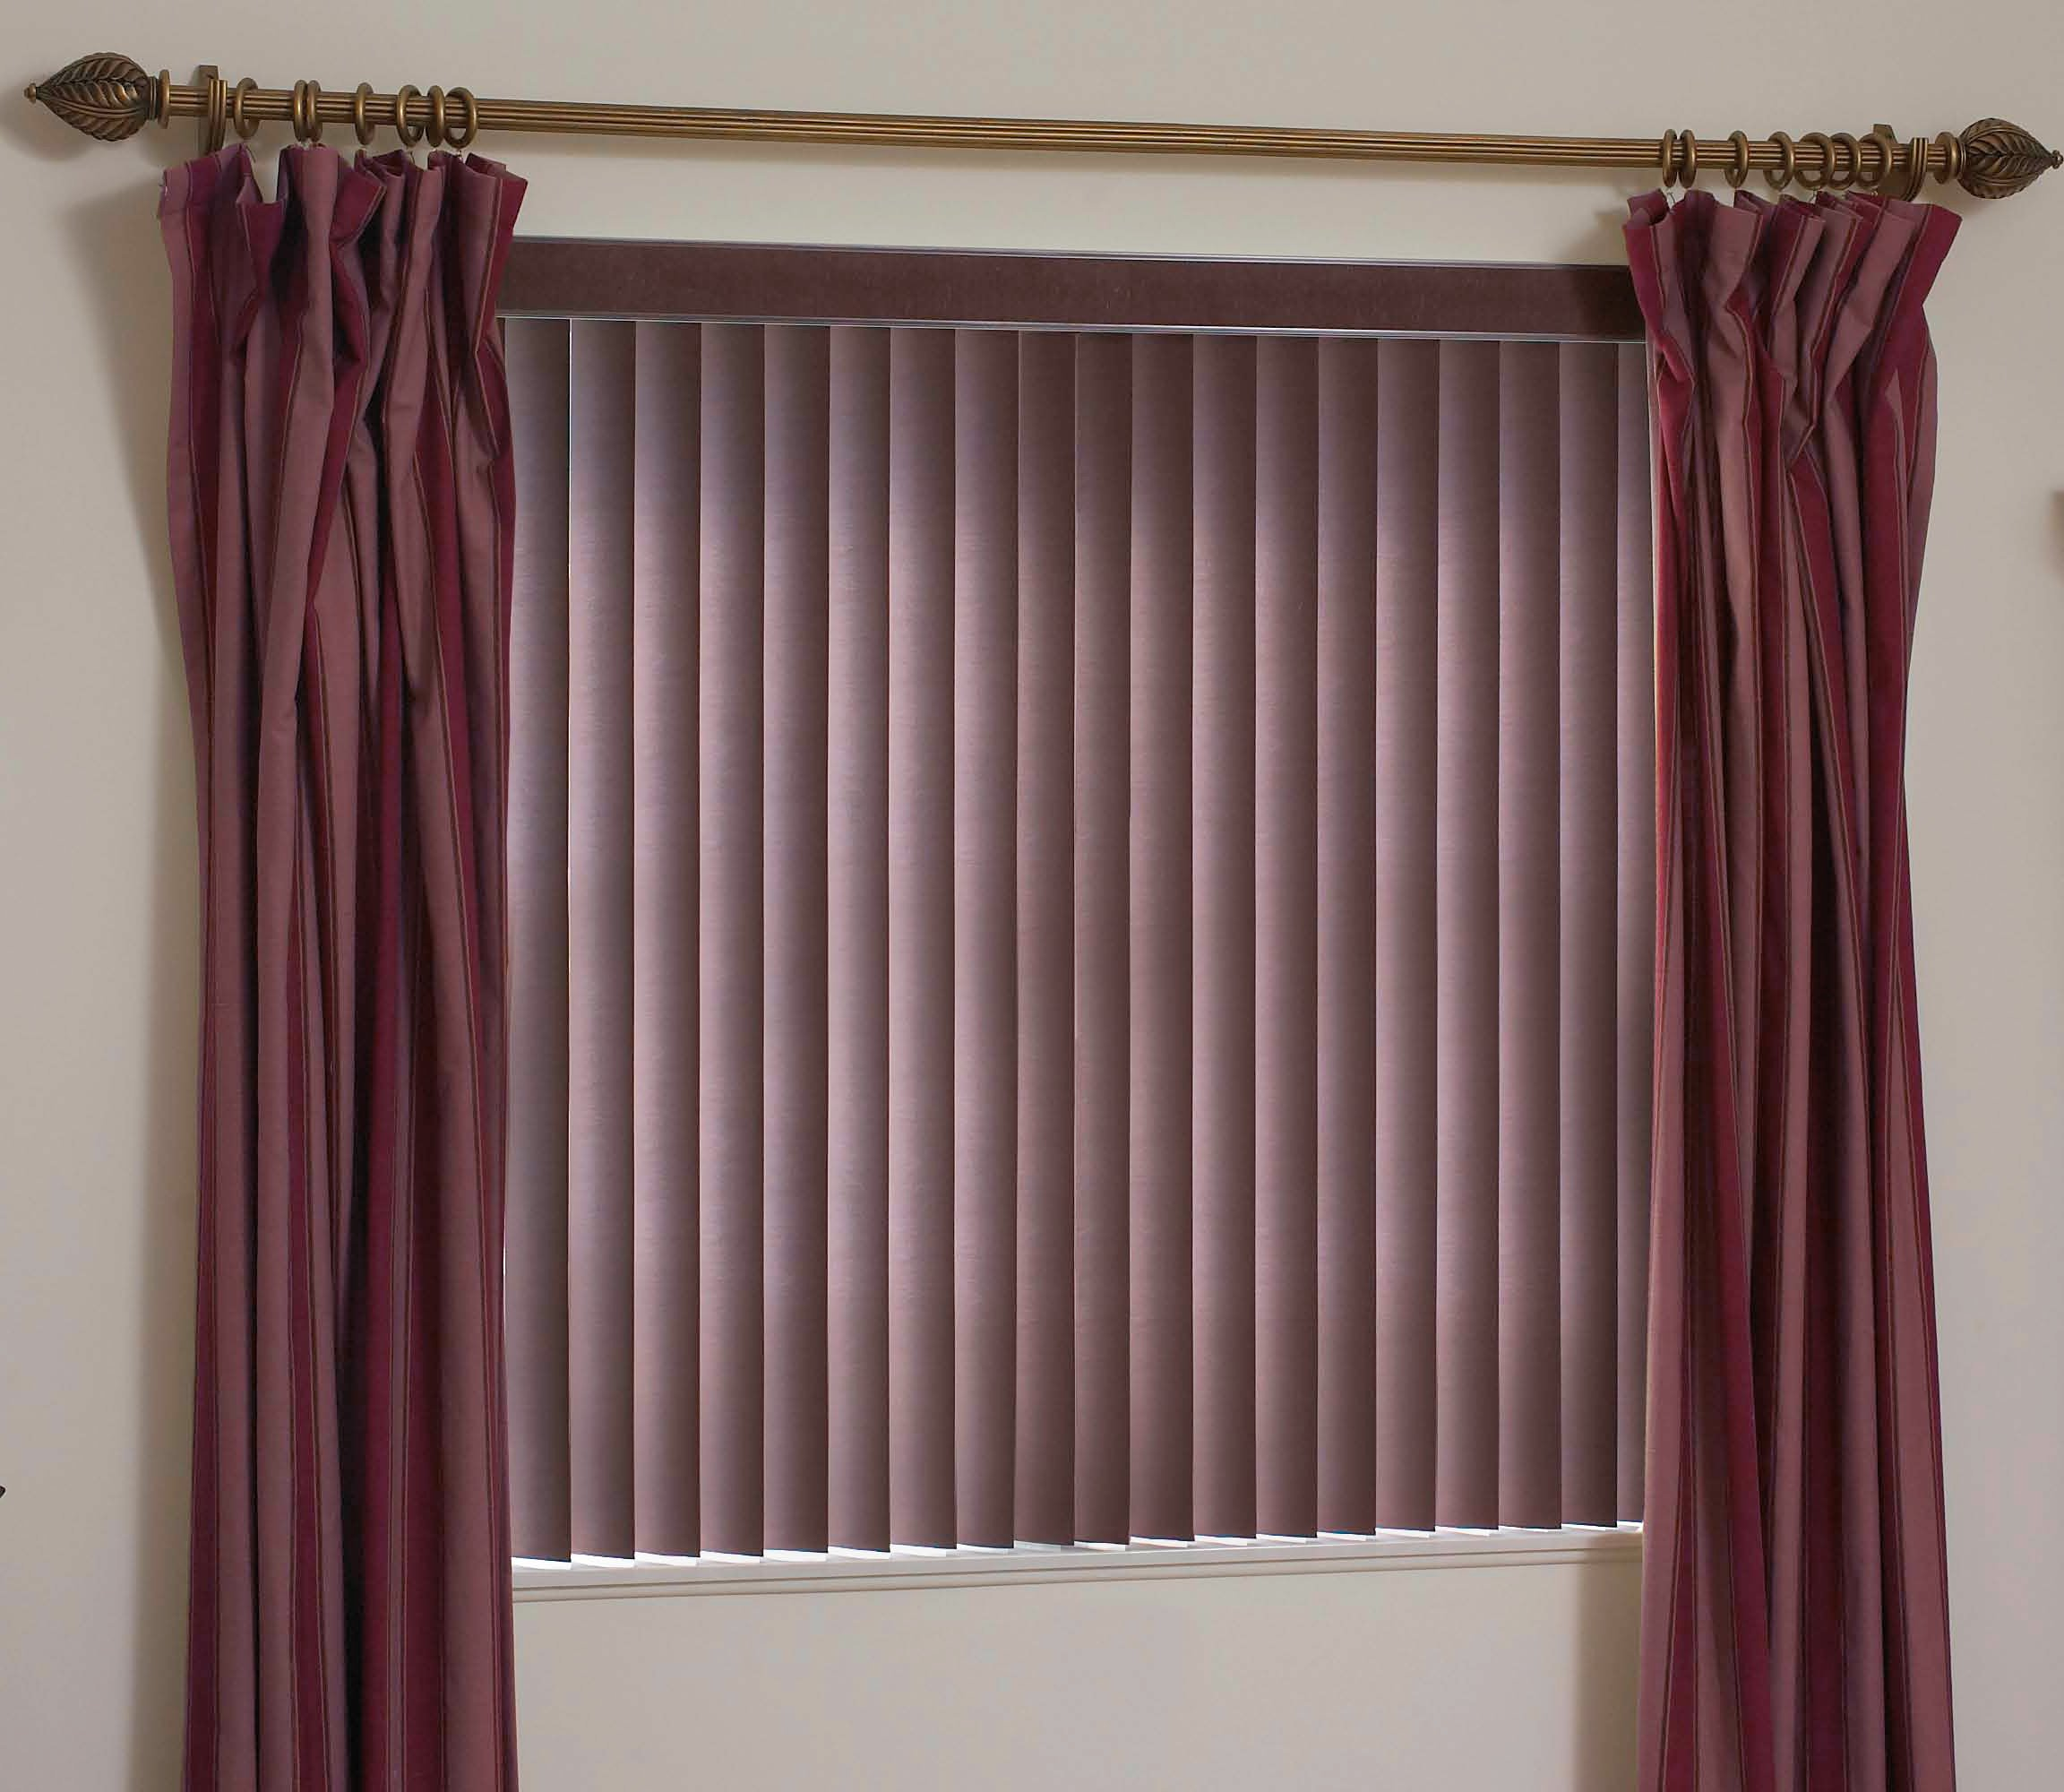 Commercial Window Coverings Roller Shades